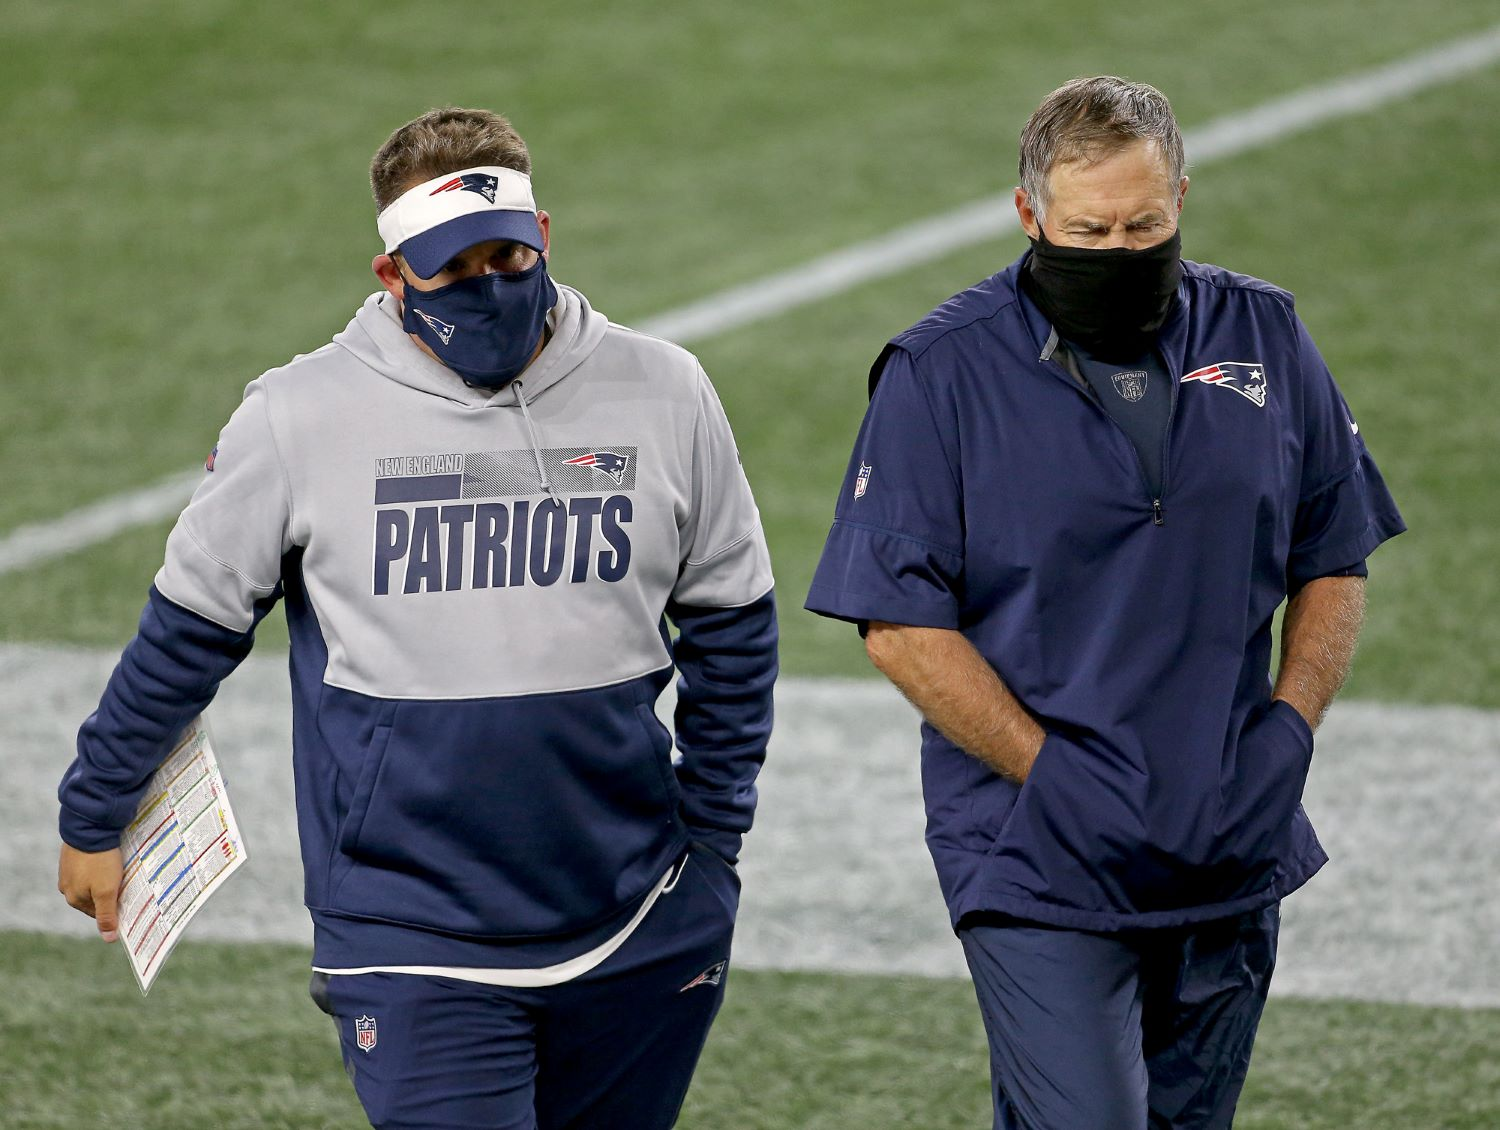 Josh McDaniels just increased his chances of replacing Bill Belichick with the latest report that the Texans will not pursue the Patriots offensive coordinator for their head coach vacancy.